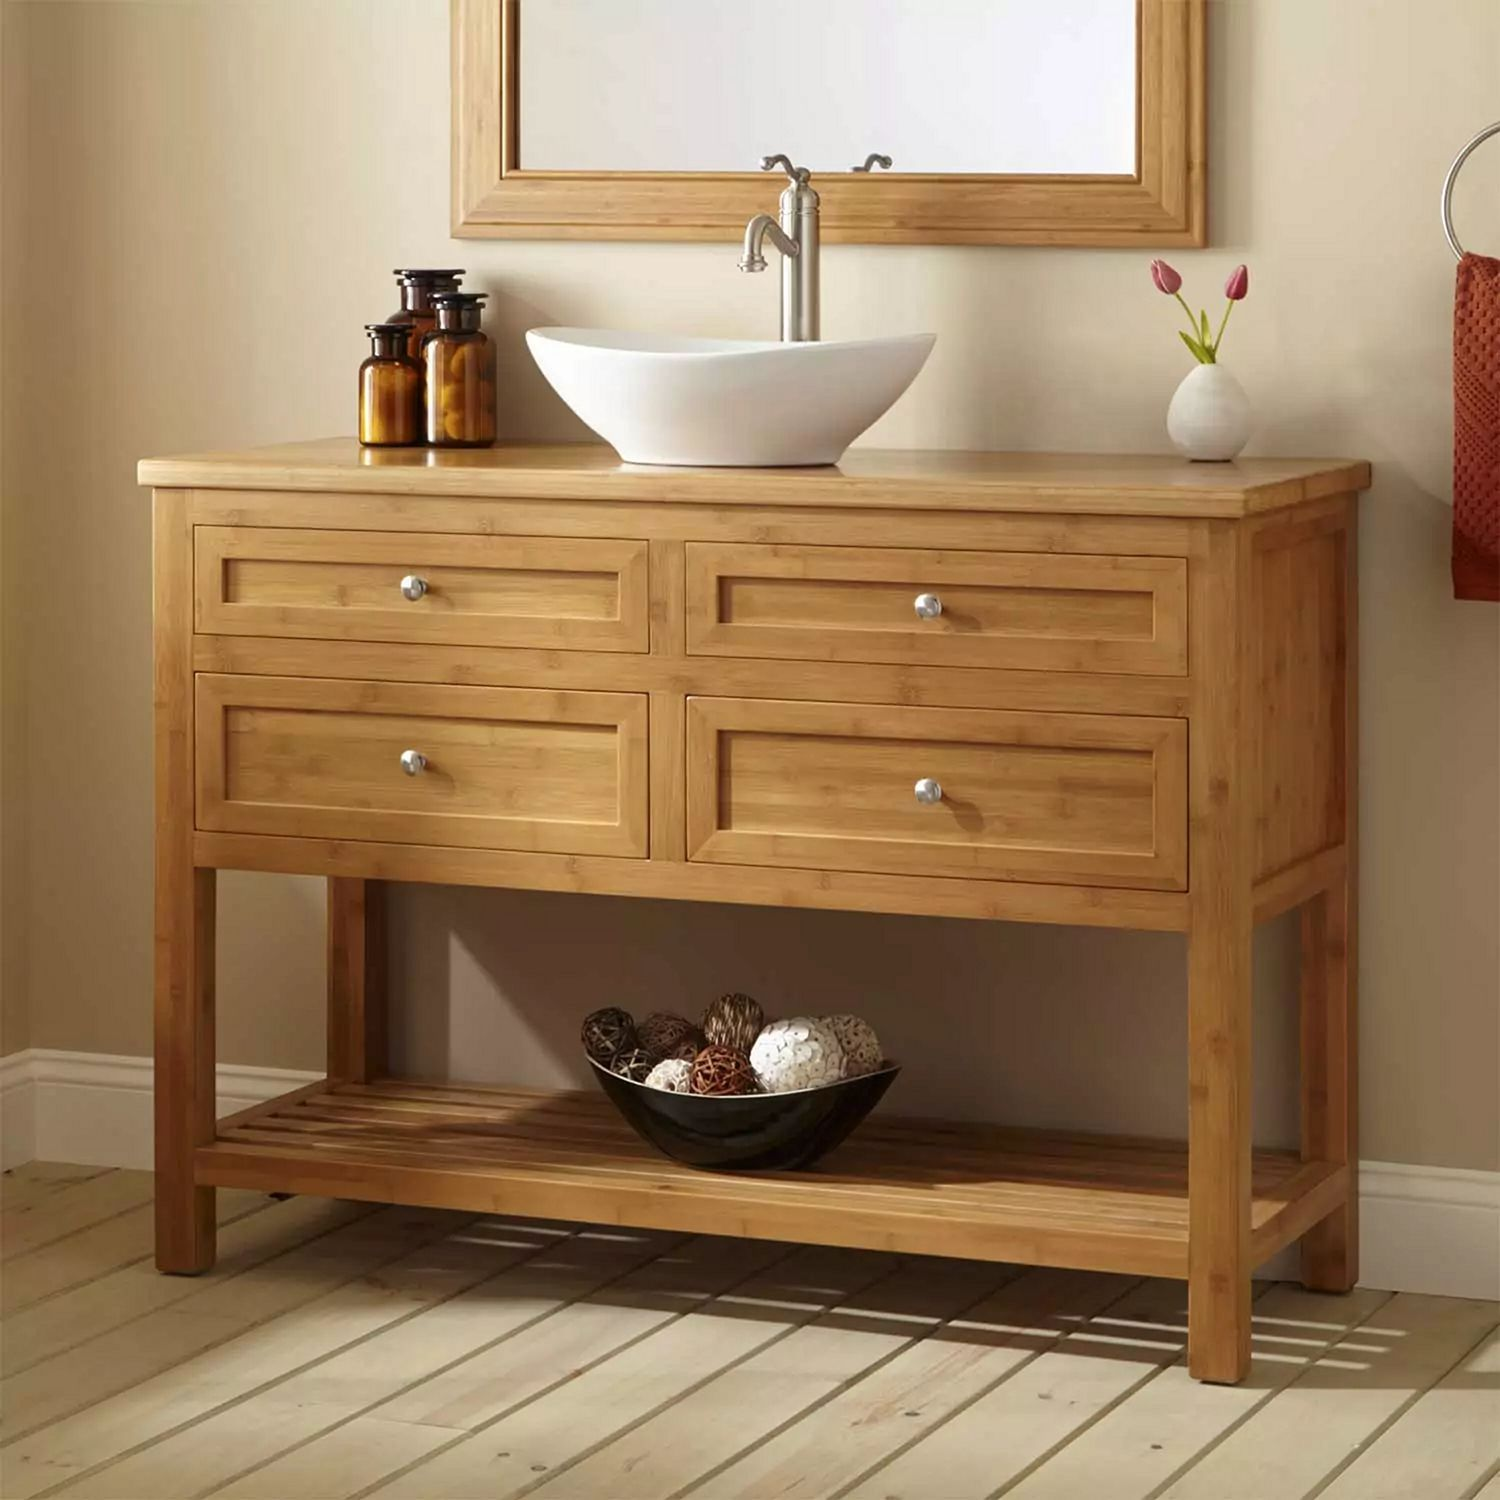 15 Best Wood Bathroom Vanities Ideas For Those Who Love Uniquess Bathroomdesign Bath Bathroom Vanity Designs Wooden Bathroom Vanity Narrow Bathroom Vanities